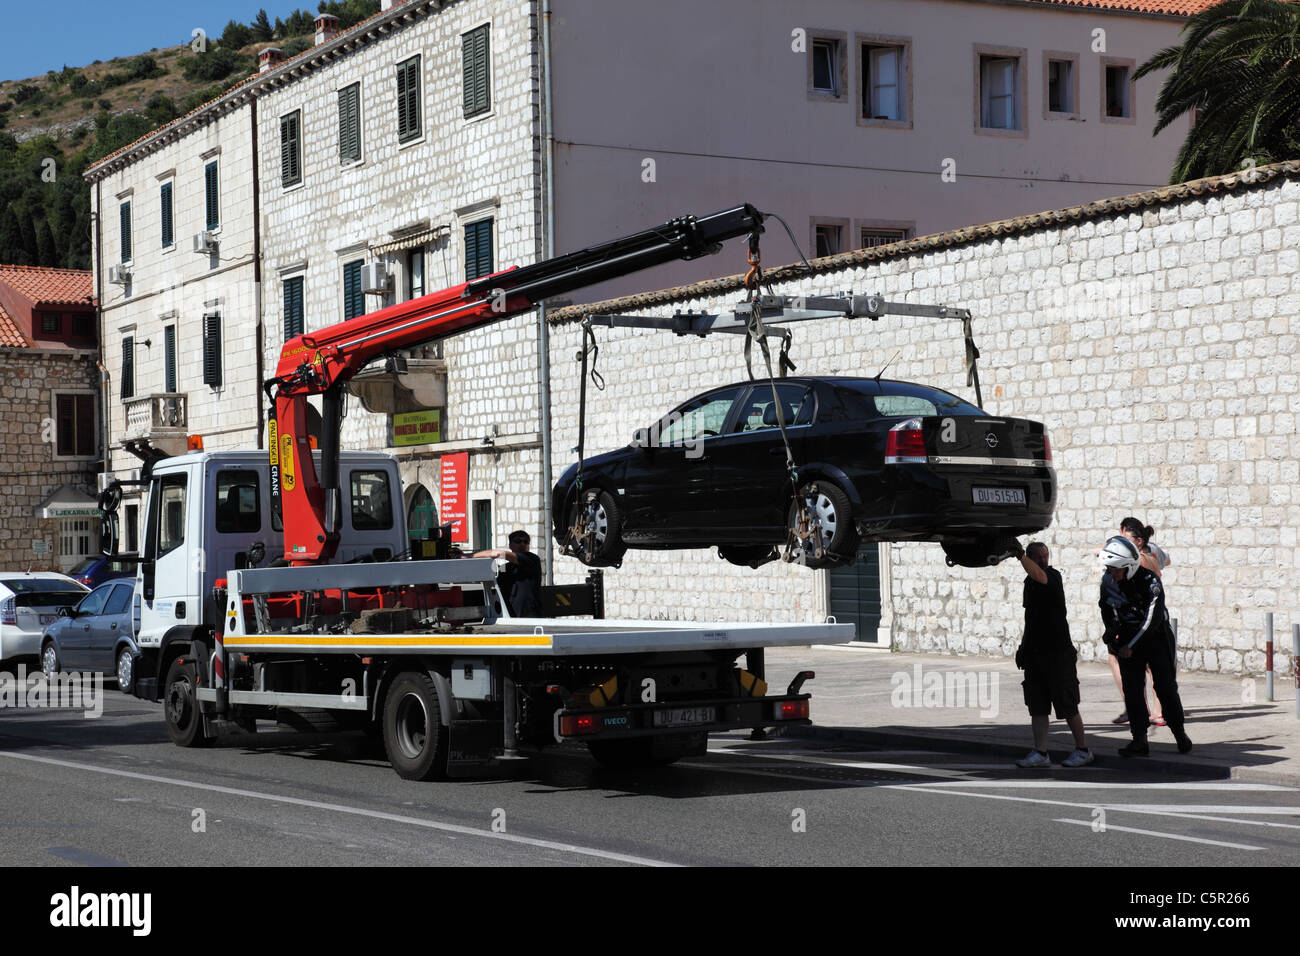 An illegally parked car being removed in Lapad, Durbovnik, Croatia - Stock Image